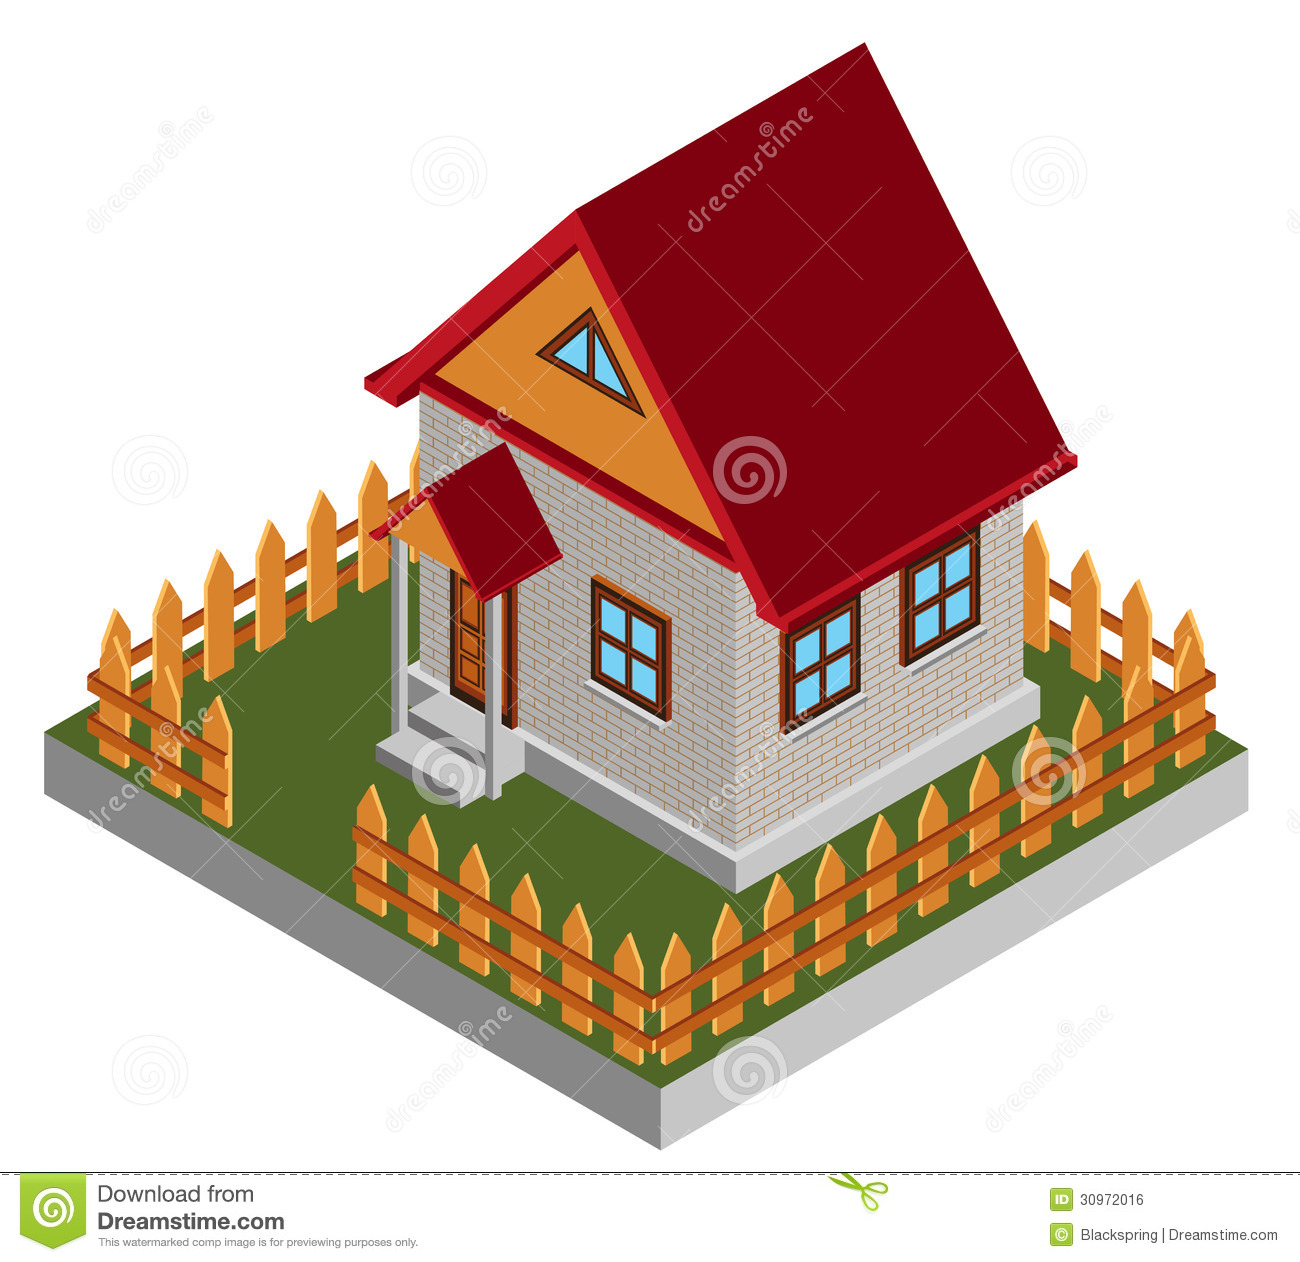 Stock Illustration Illustration Pixel Art Icon House Vector Isolate Image53896917 likewise Terraria 1 3 Update How To Get Every Npc Housing Guide additionally House Plan Drawing Valine also Watch also Medieval Building Tiles. on 2d pixel house